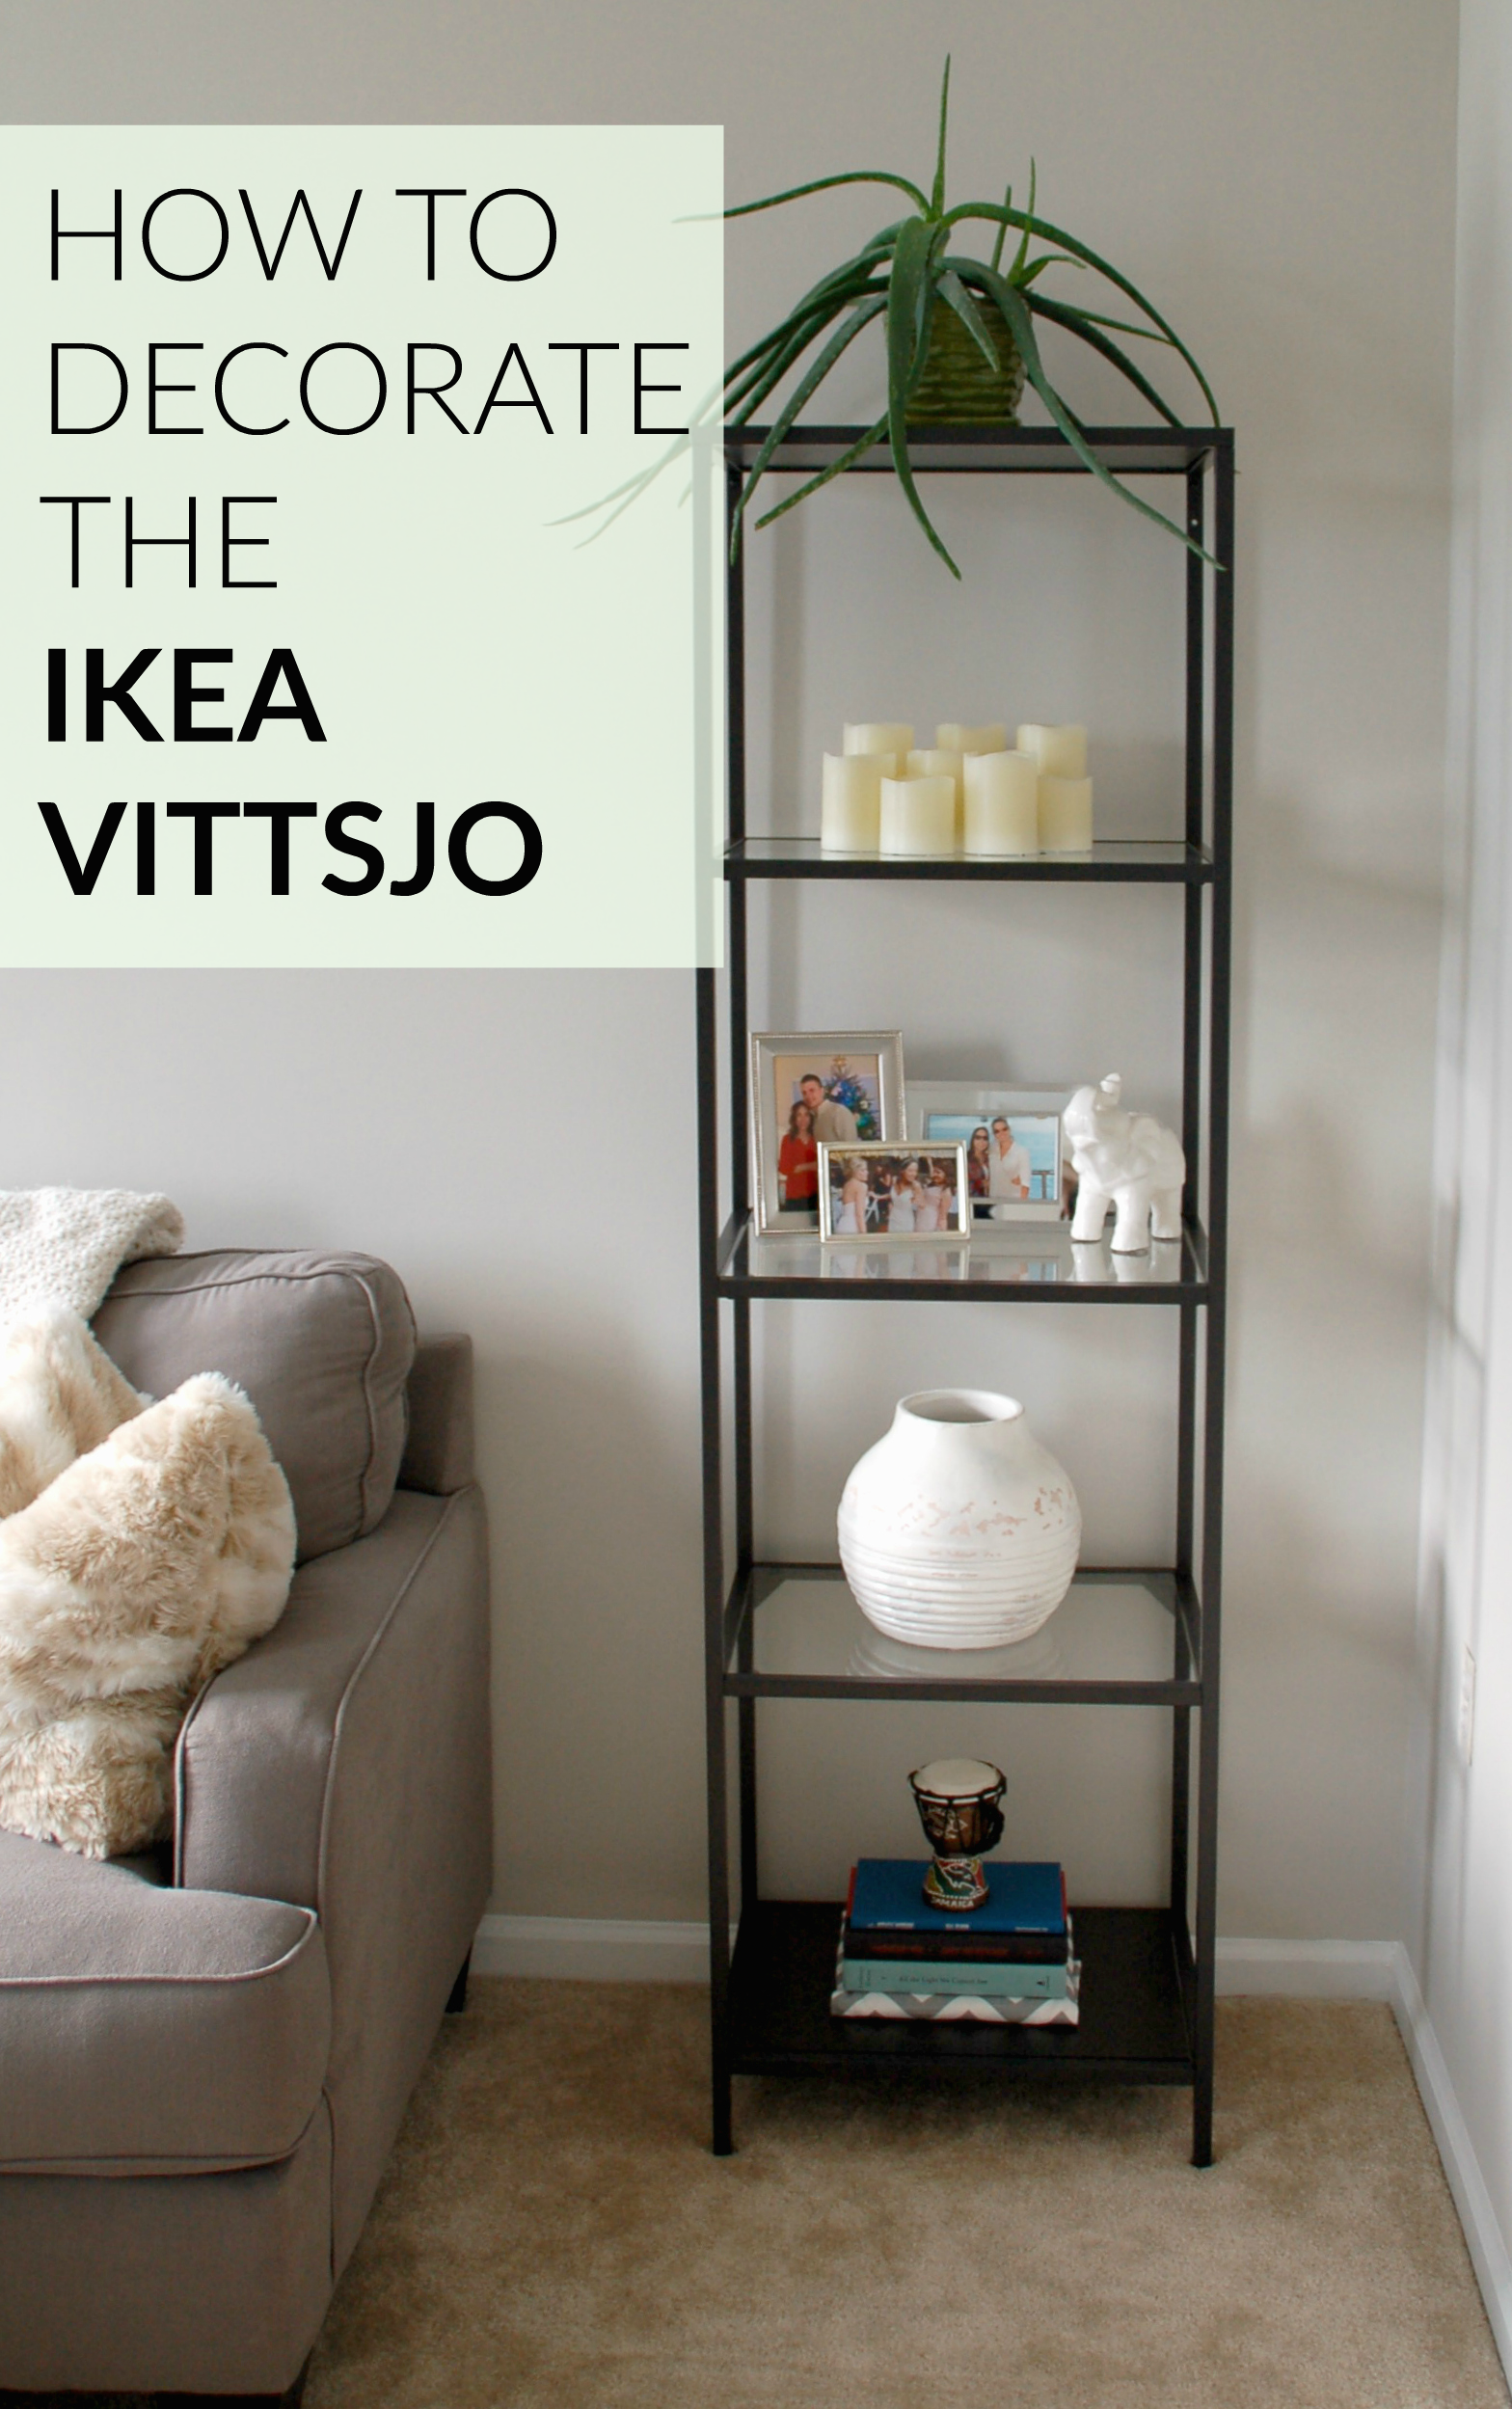 how to decorate the ikea vittsjo